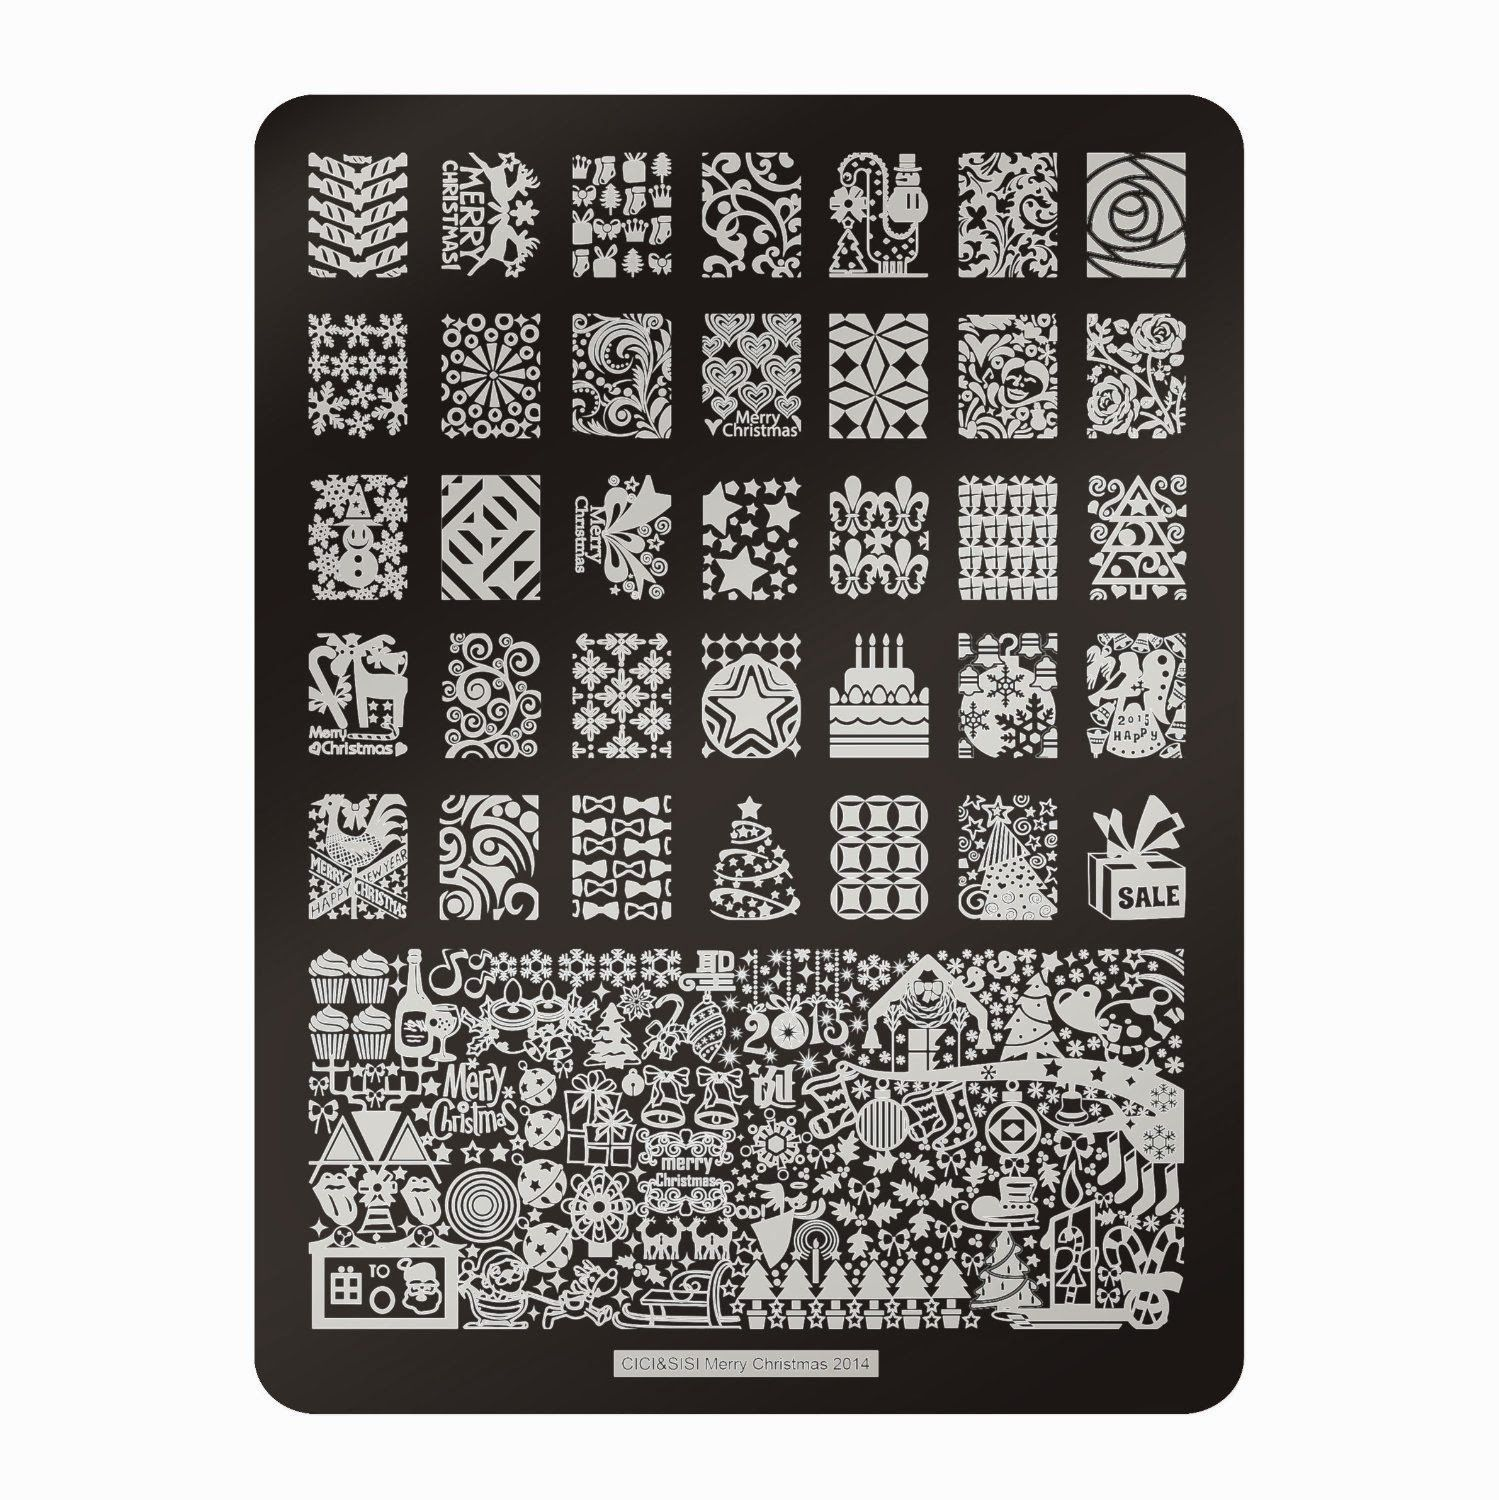 stamping plate cici & sisi christmas 2014 - Google Search   All ...